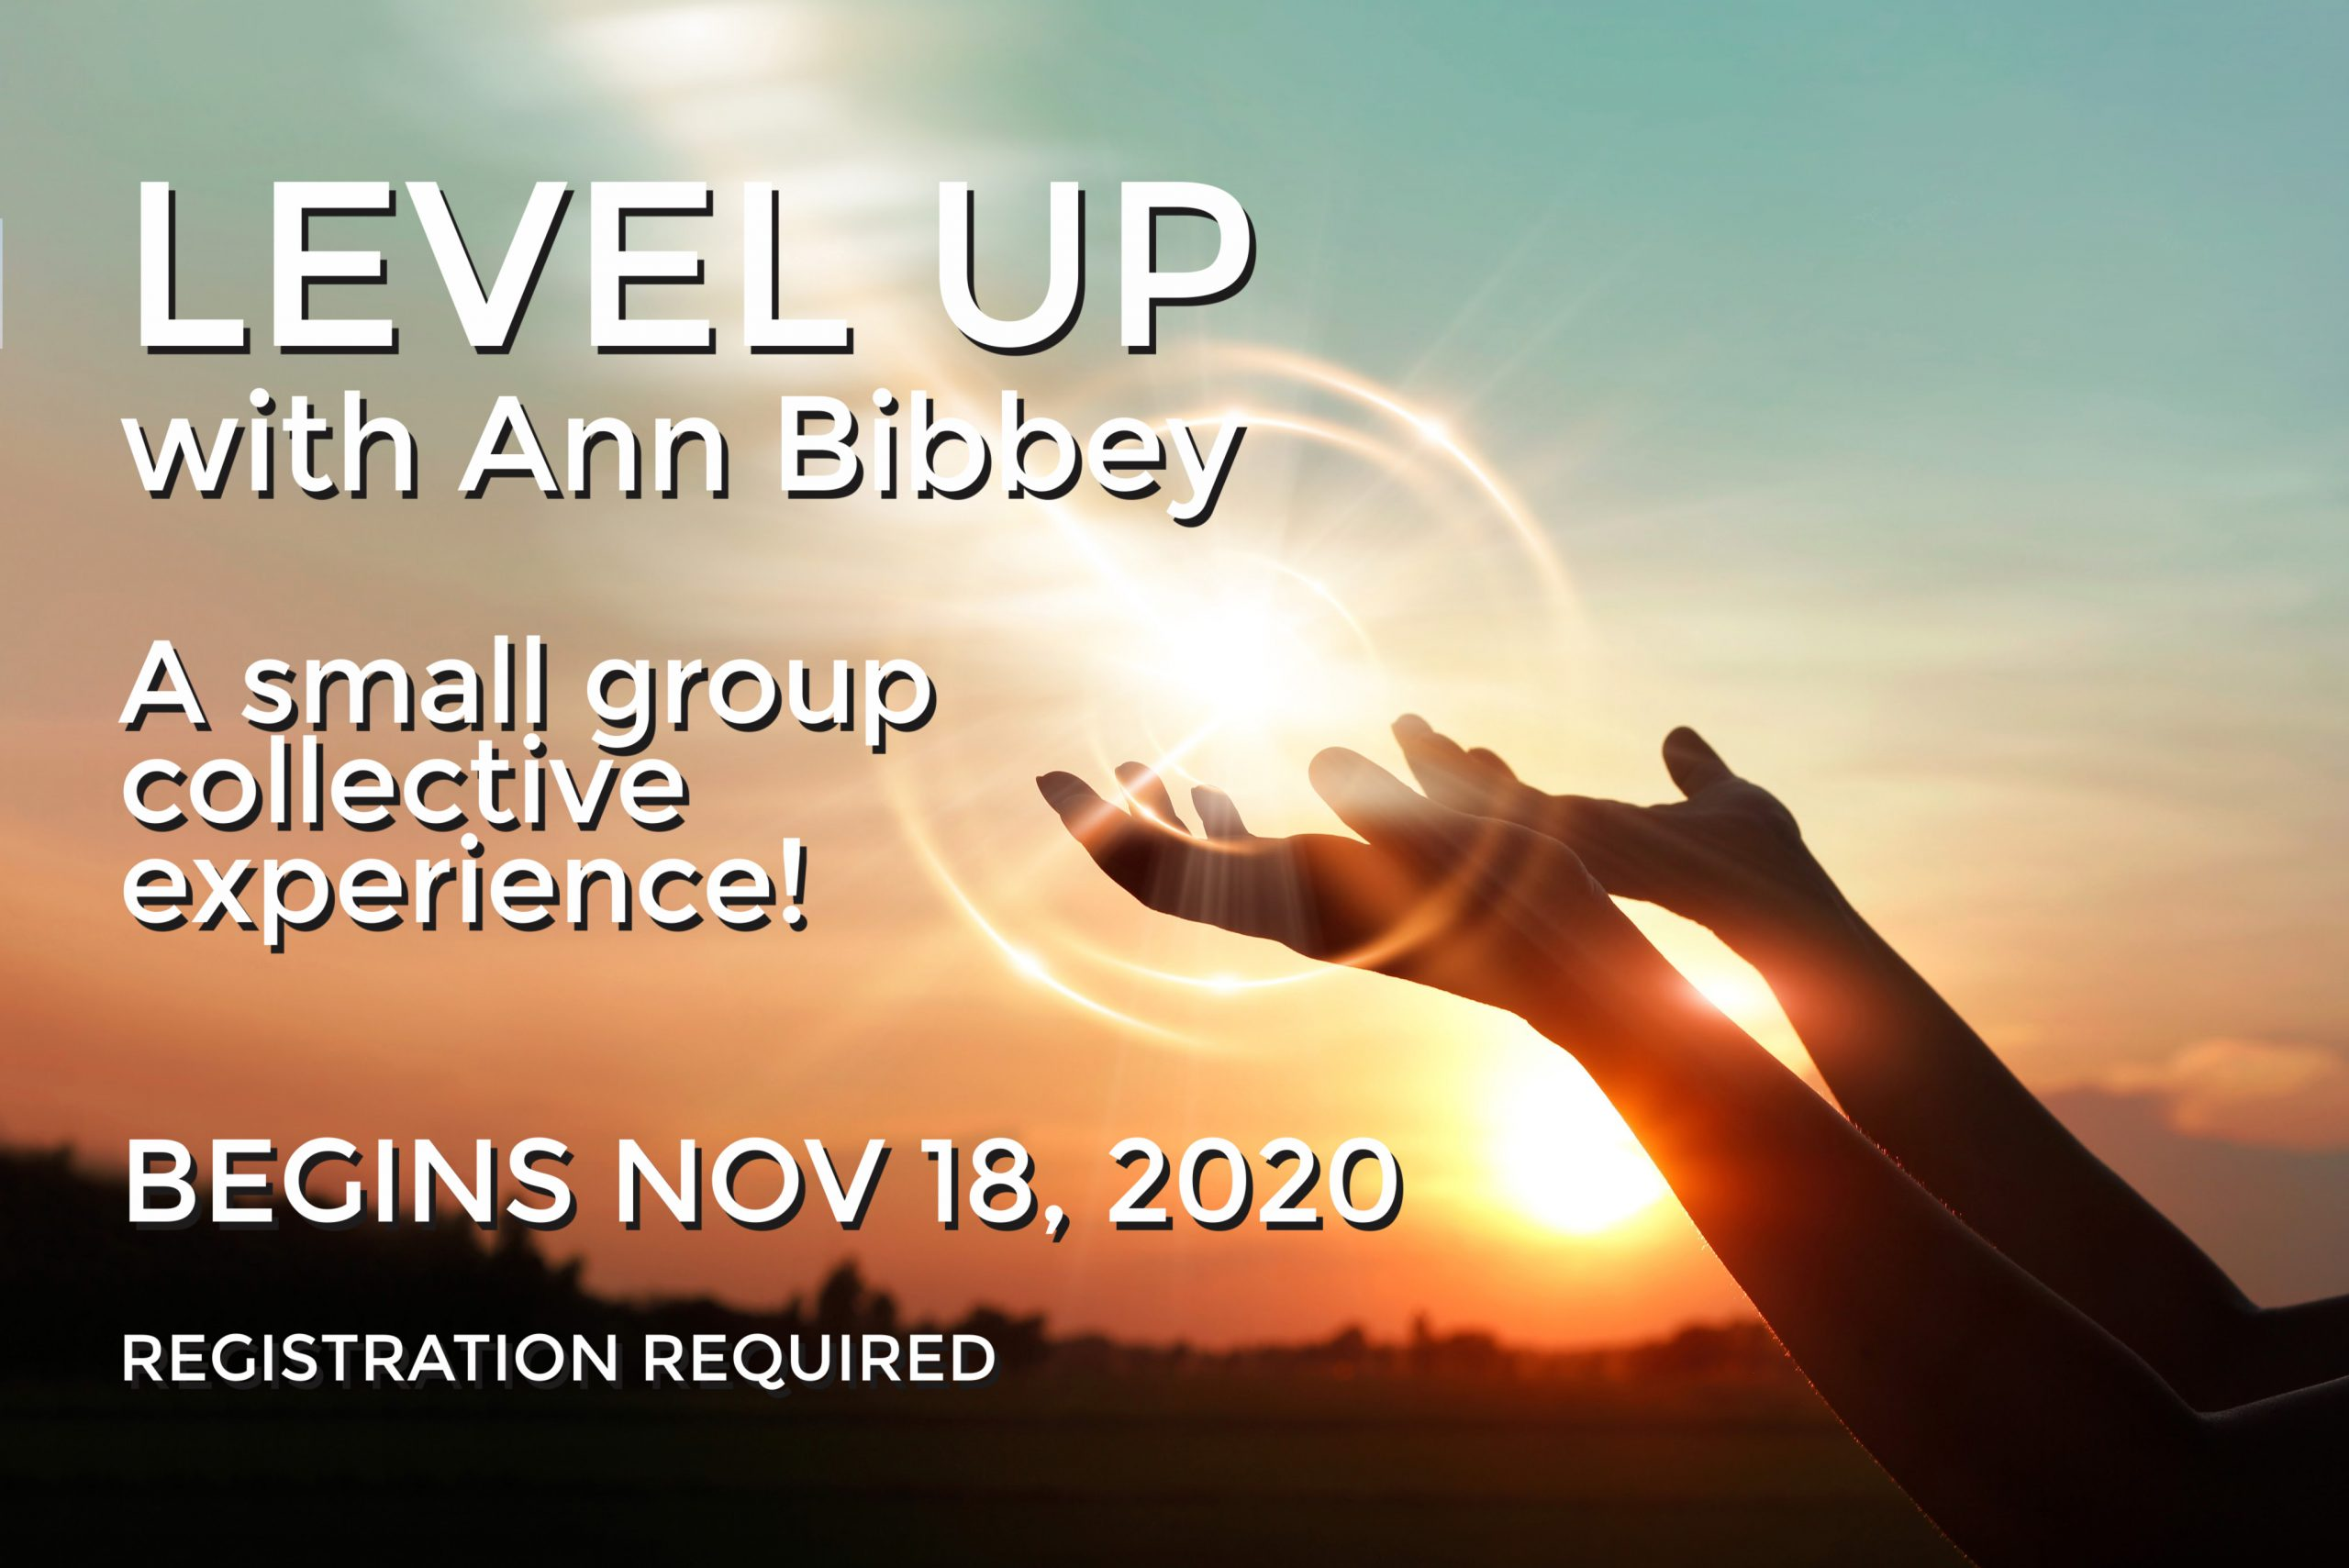 Level UP with Ann Bibbey